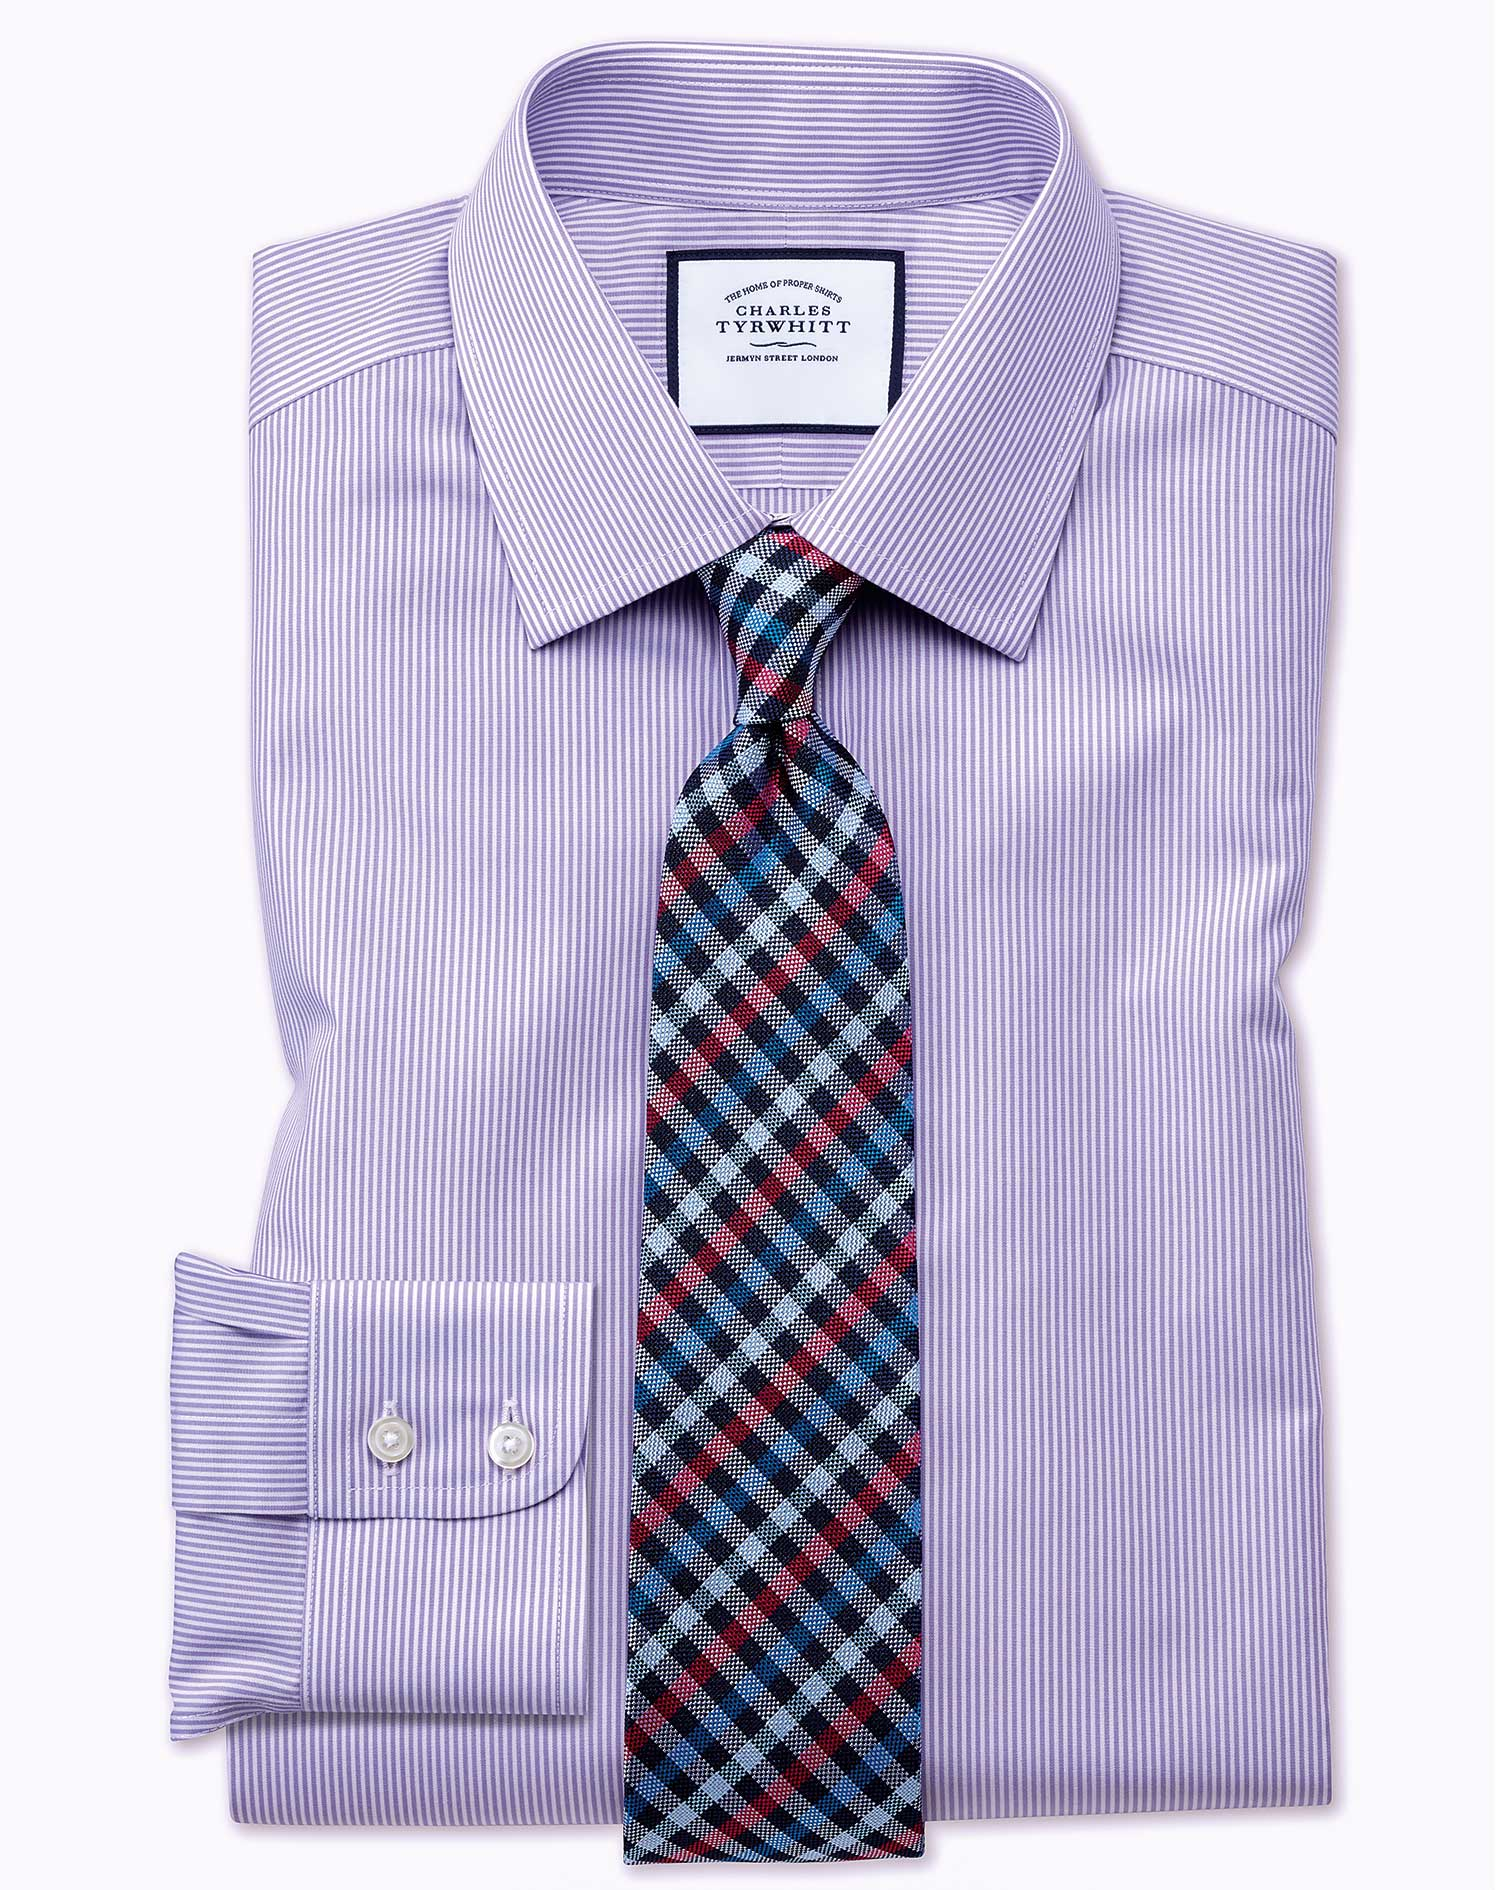 Classic Fit Non-Iron Bengal Stripe Lilac Cotton Formal Shirt Double Cuff Size 16/35 by Charles Tyrwh